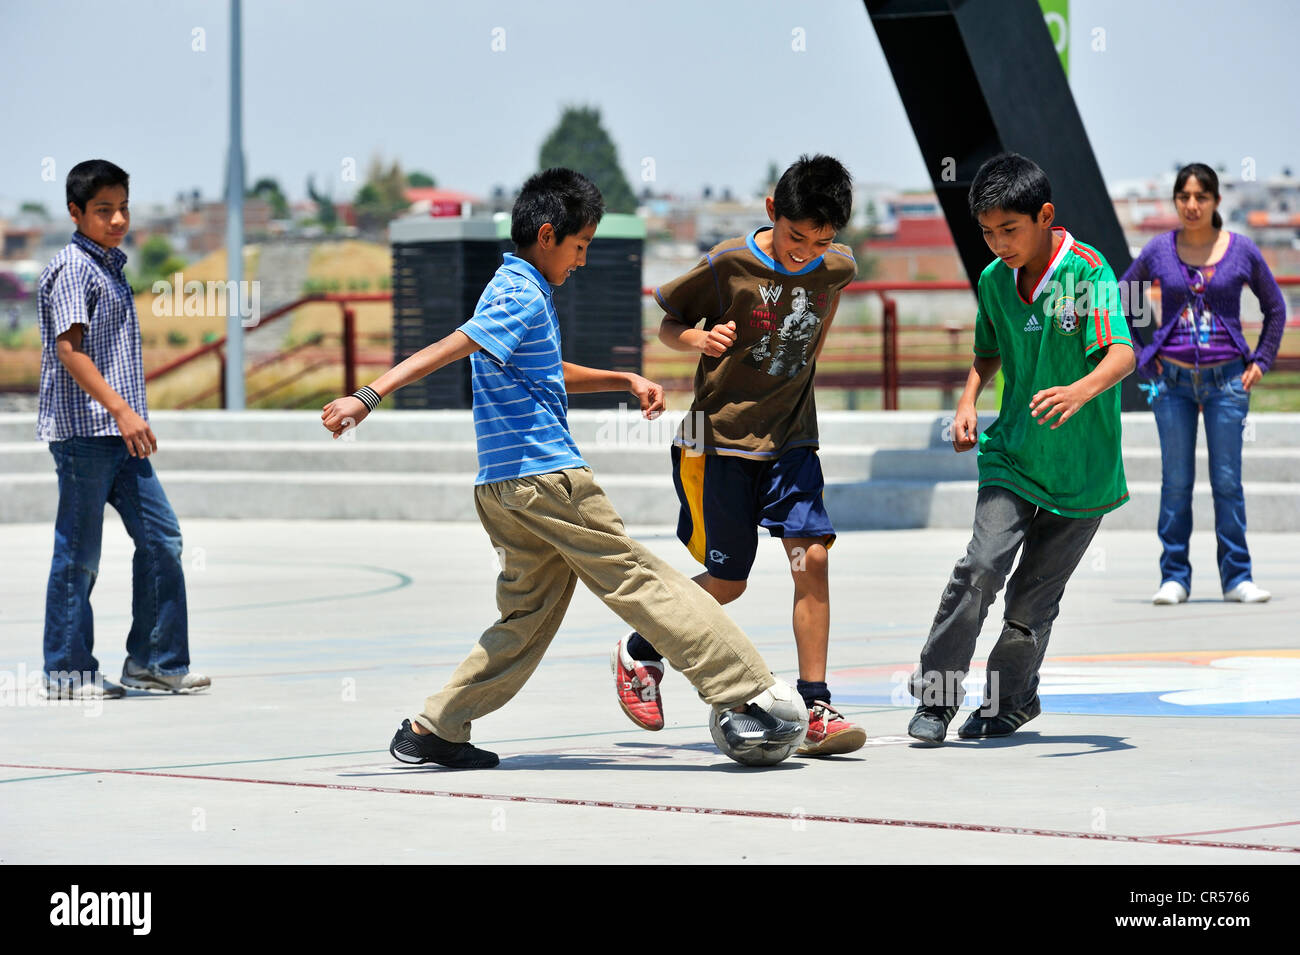 Young people playing football, Puebla, Mexico, North America, Latin America Stock Photo